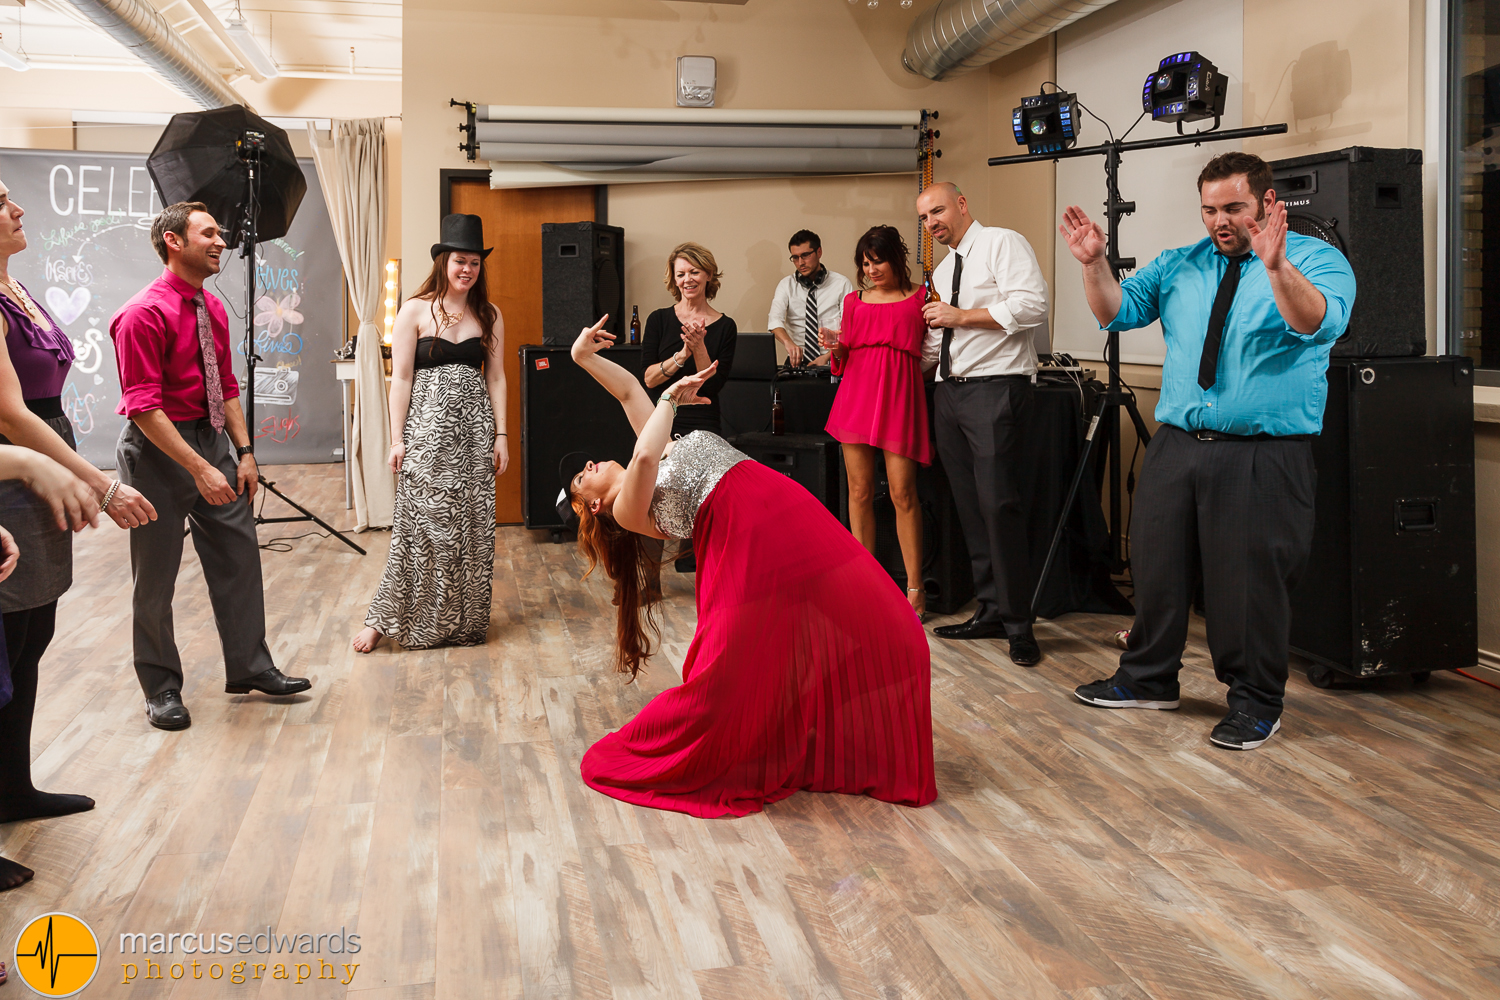 My wife Janie ripping it up on the dance floor